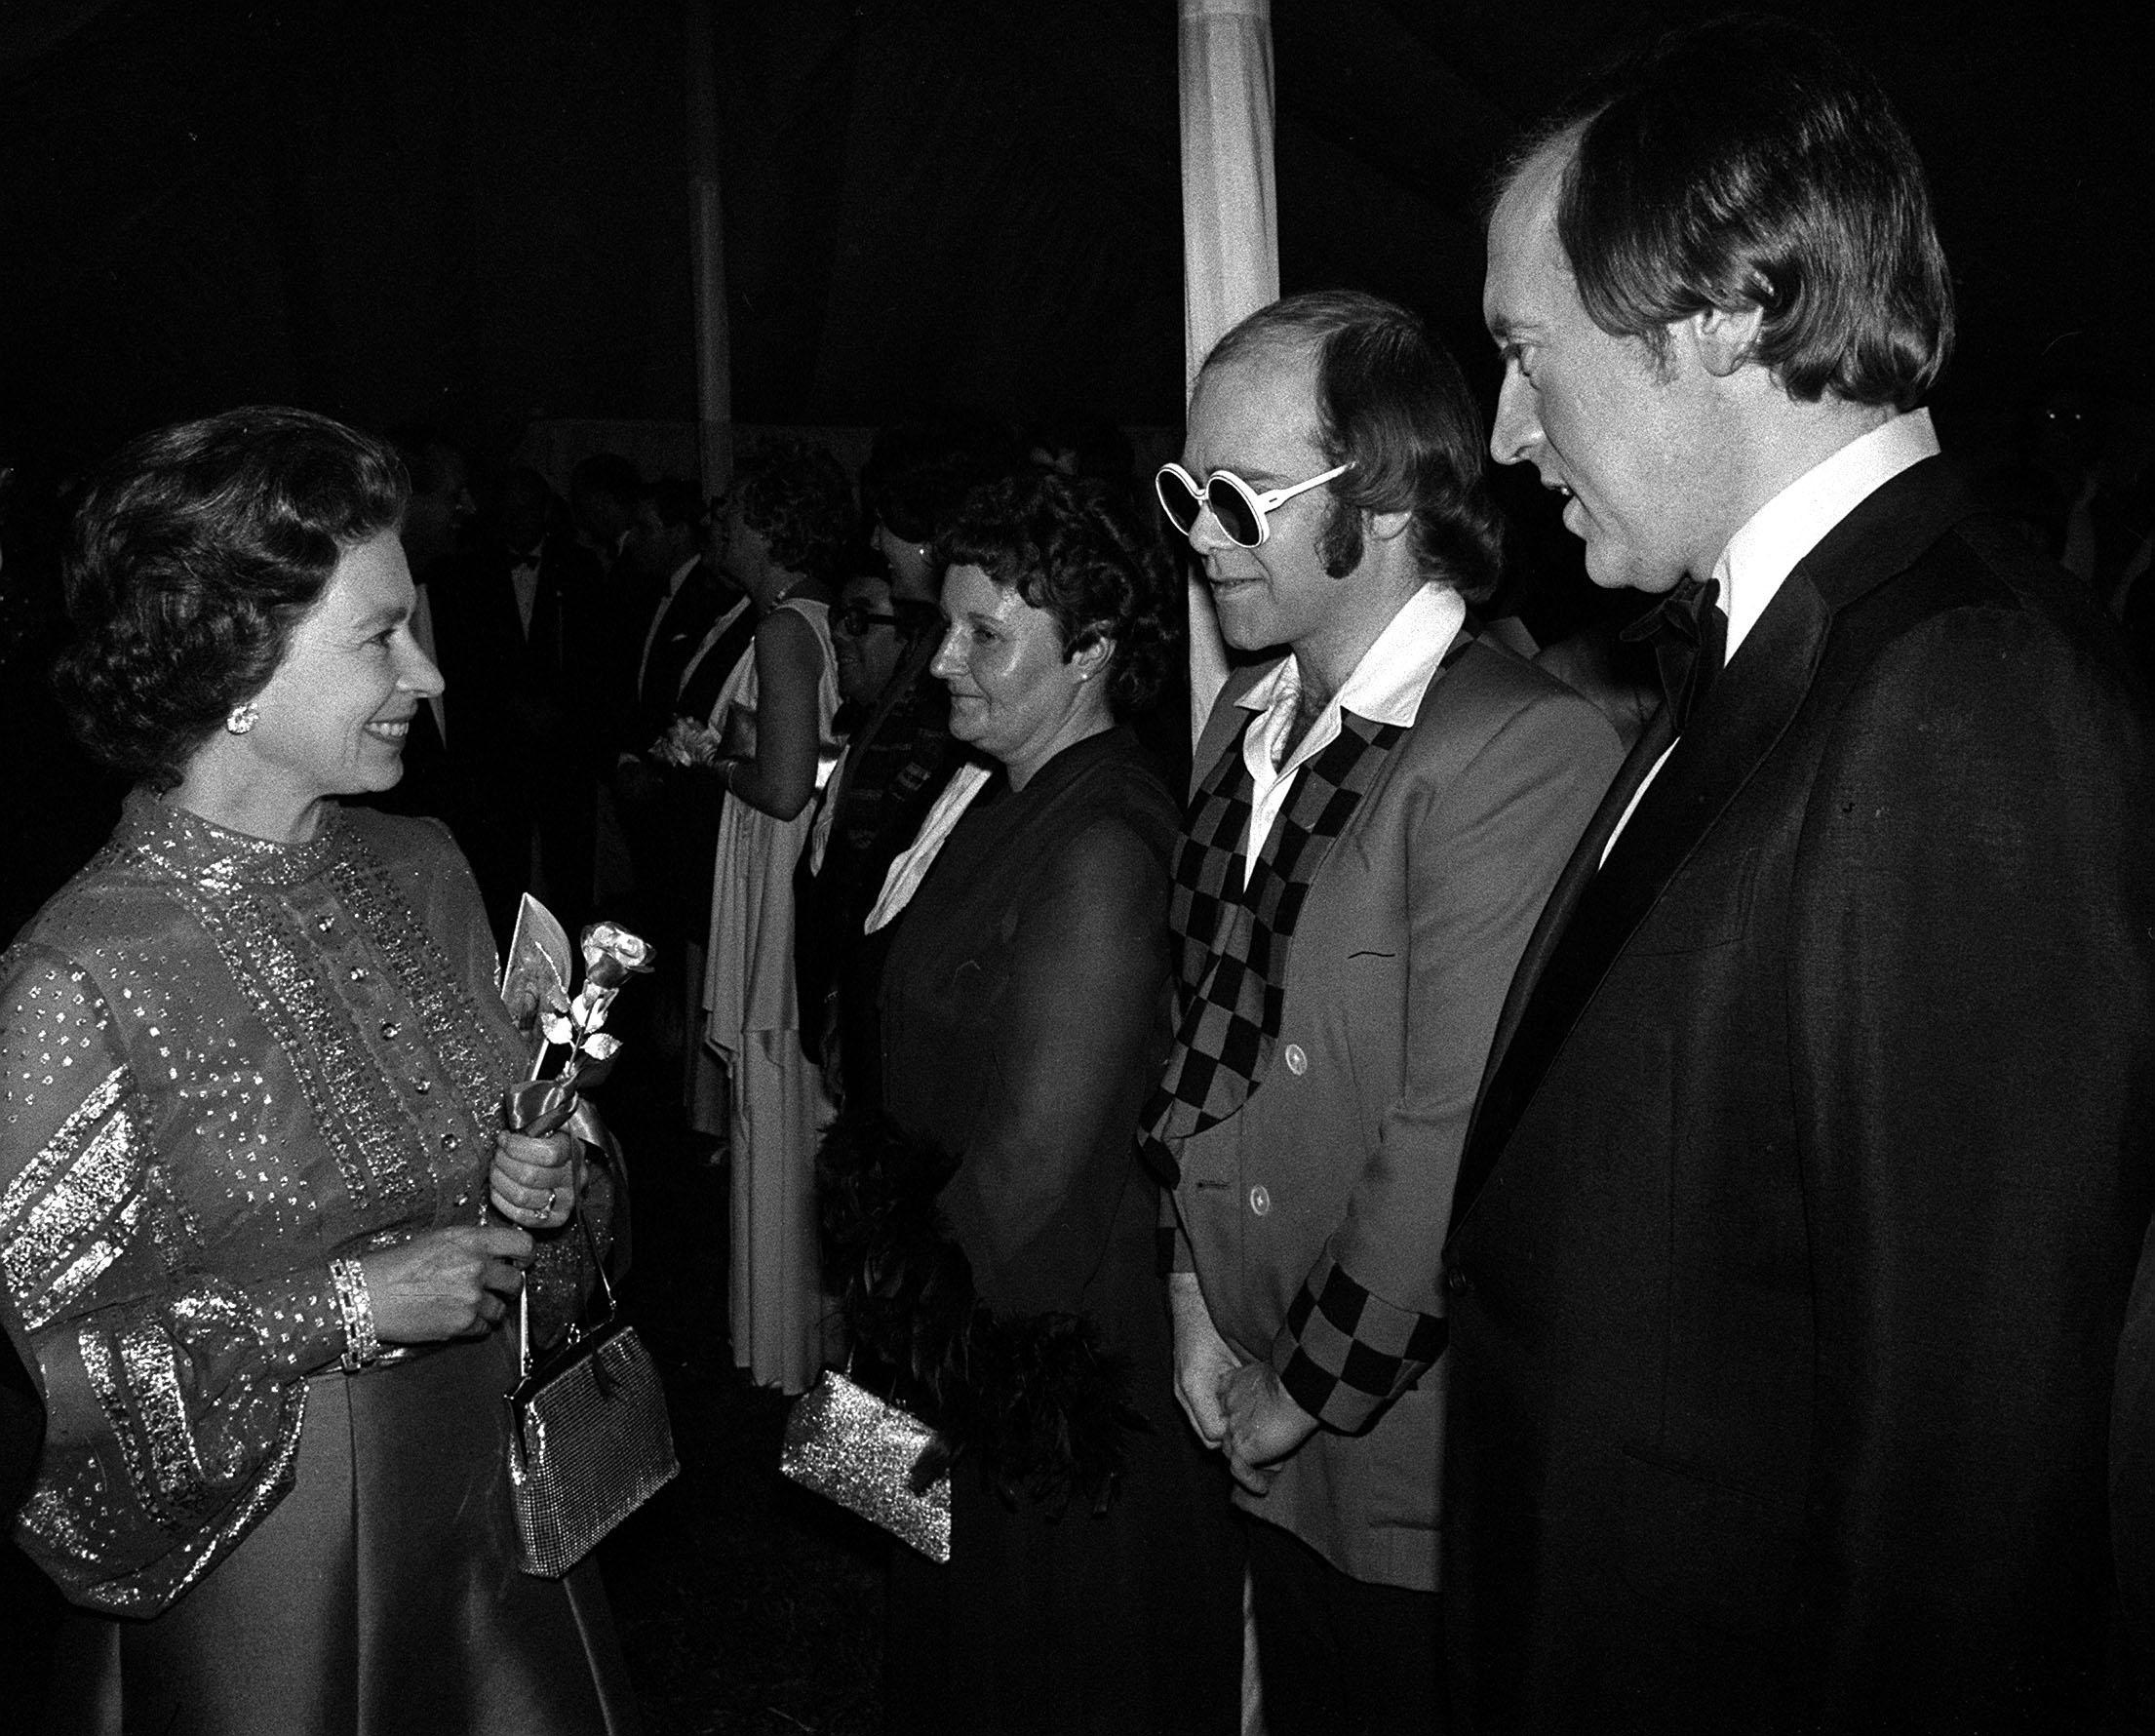 Bespectacled pop star Elton John and television personality David Frost being presented to the Queen at Windsor when they were among a host of stars appearing in a gala variety performance in the Big Top at Home Park in aid of the Queen's Silver Jubilee Appeal.